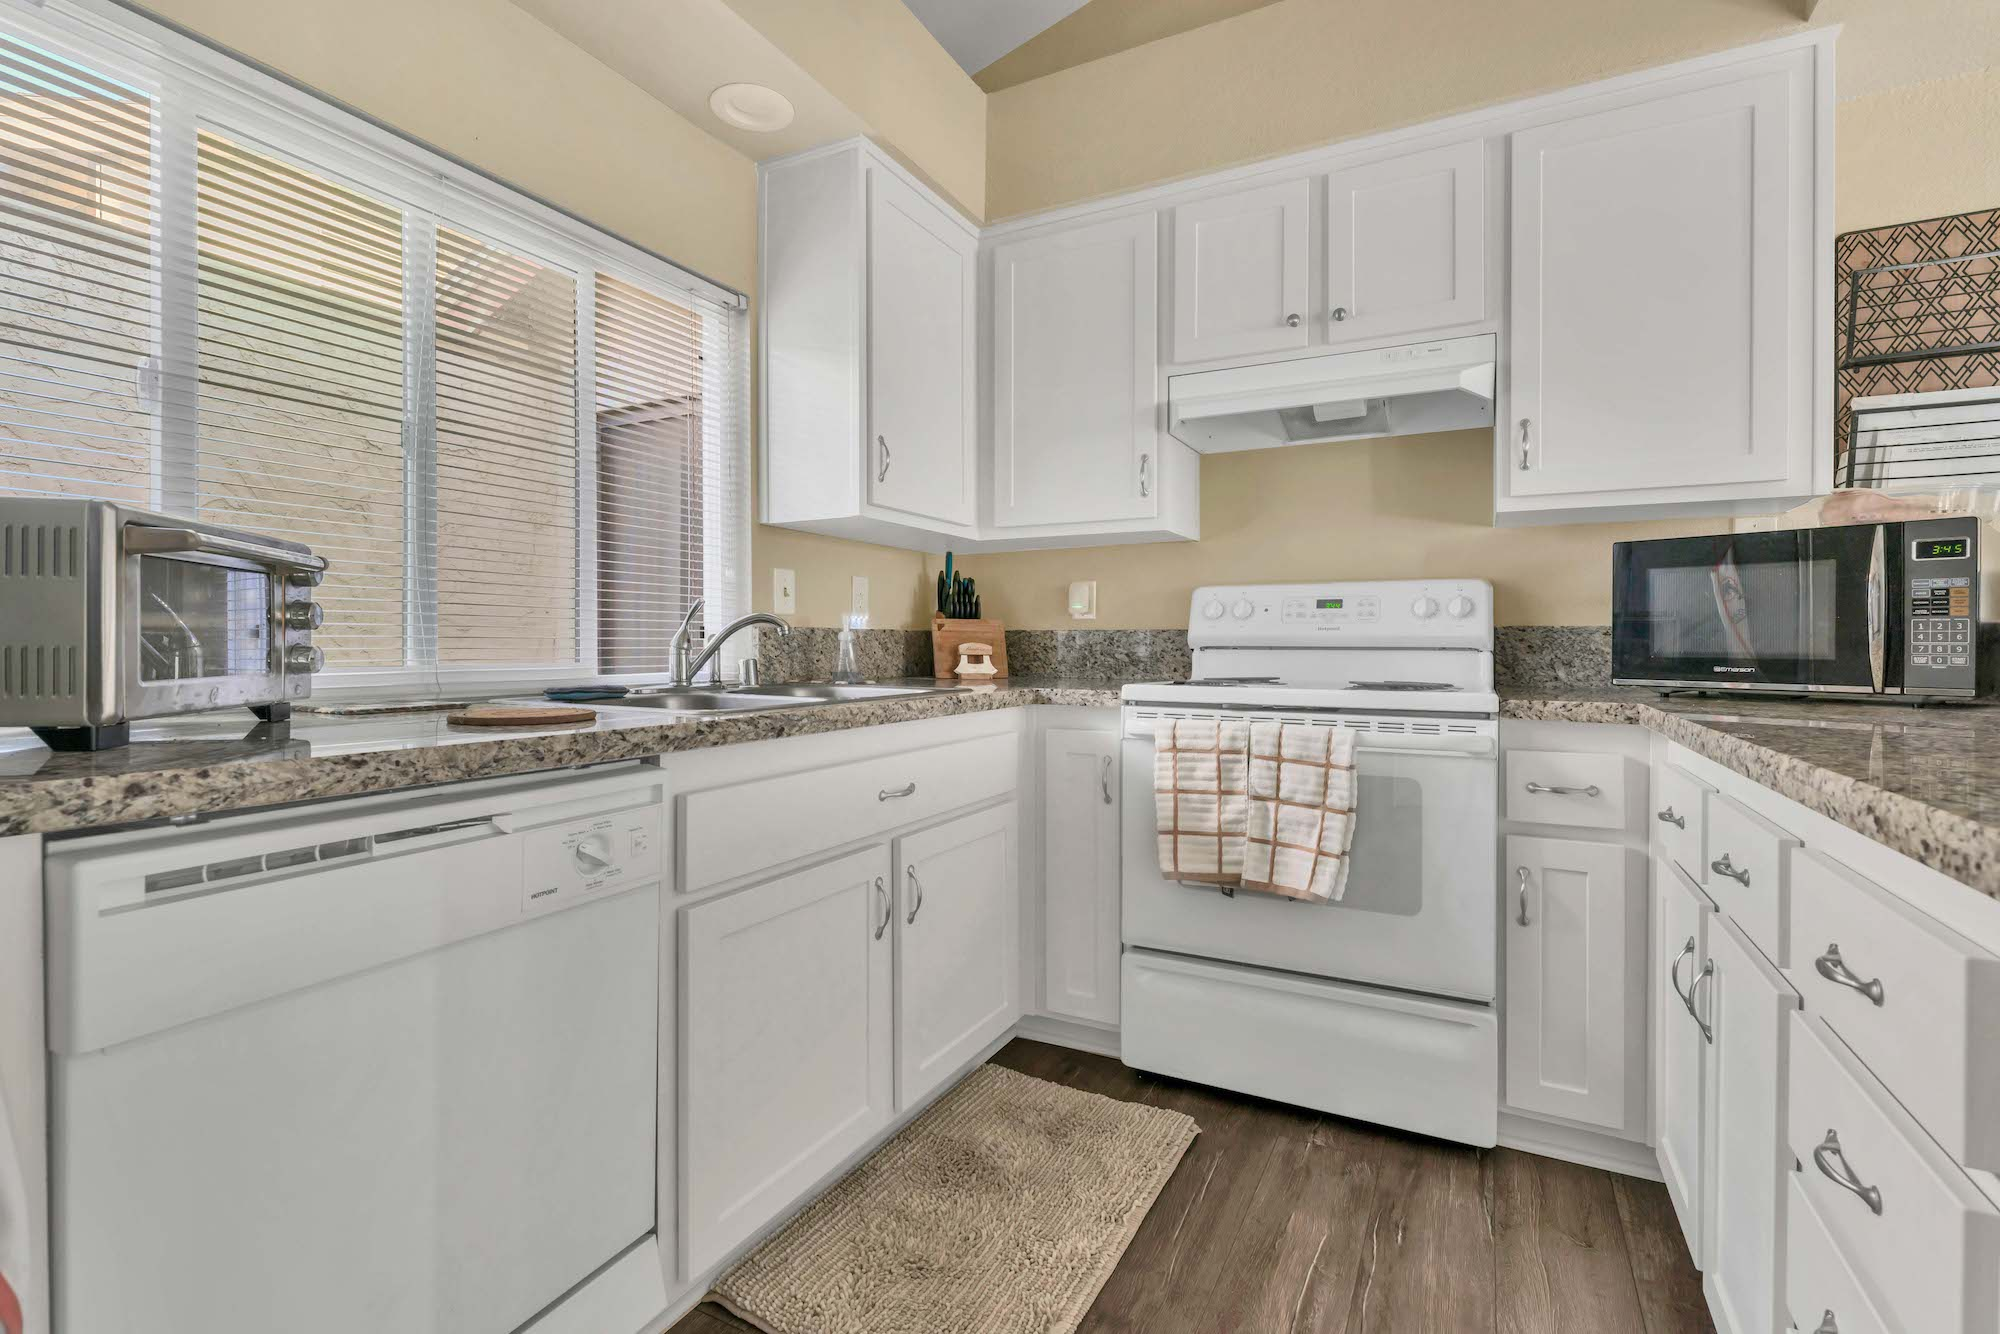 Kitchen of home at 7121 Heather Tree Dr, Sacramento Ca